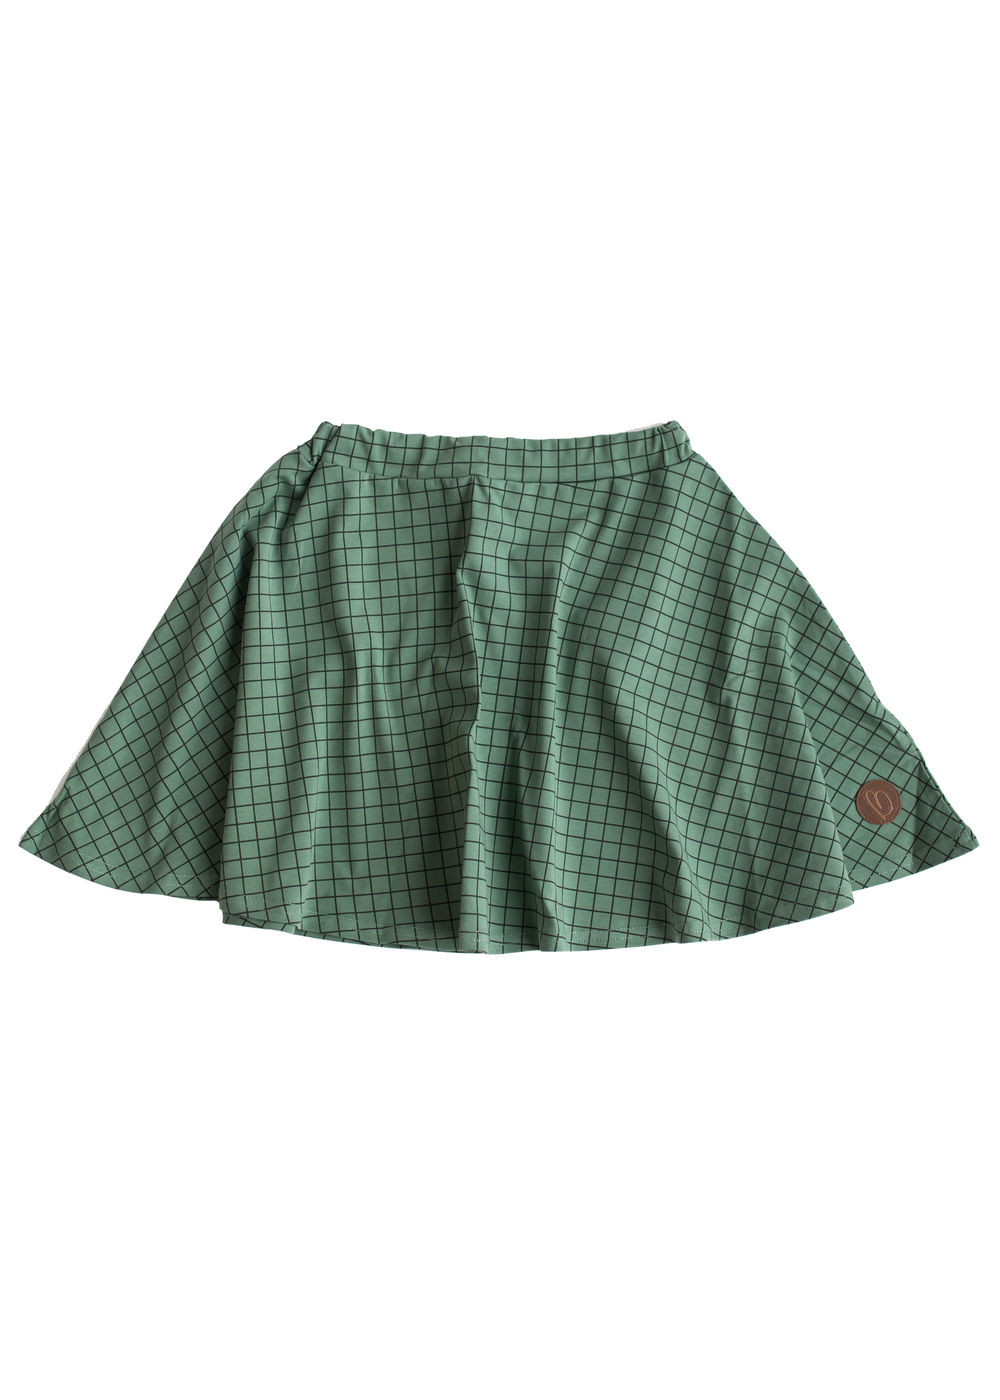 Caltra Skirt, Grid Green